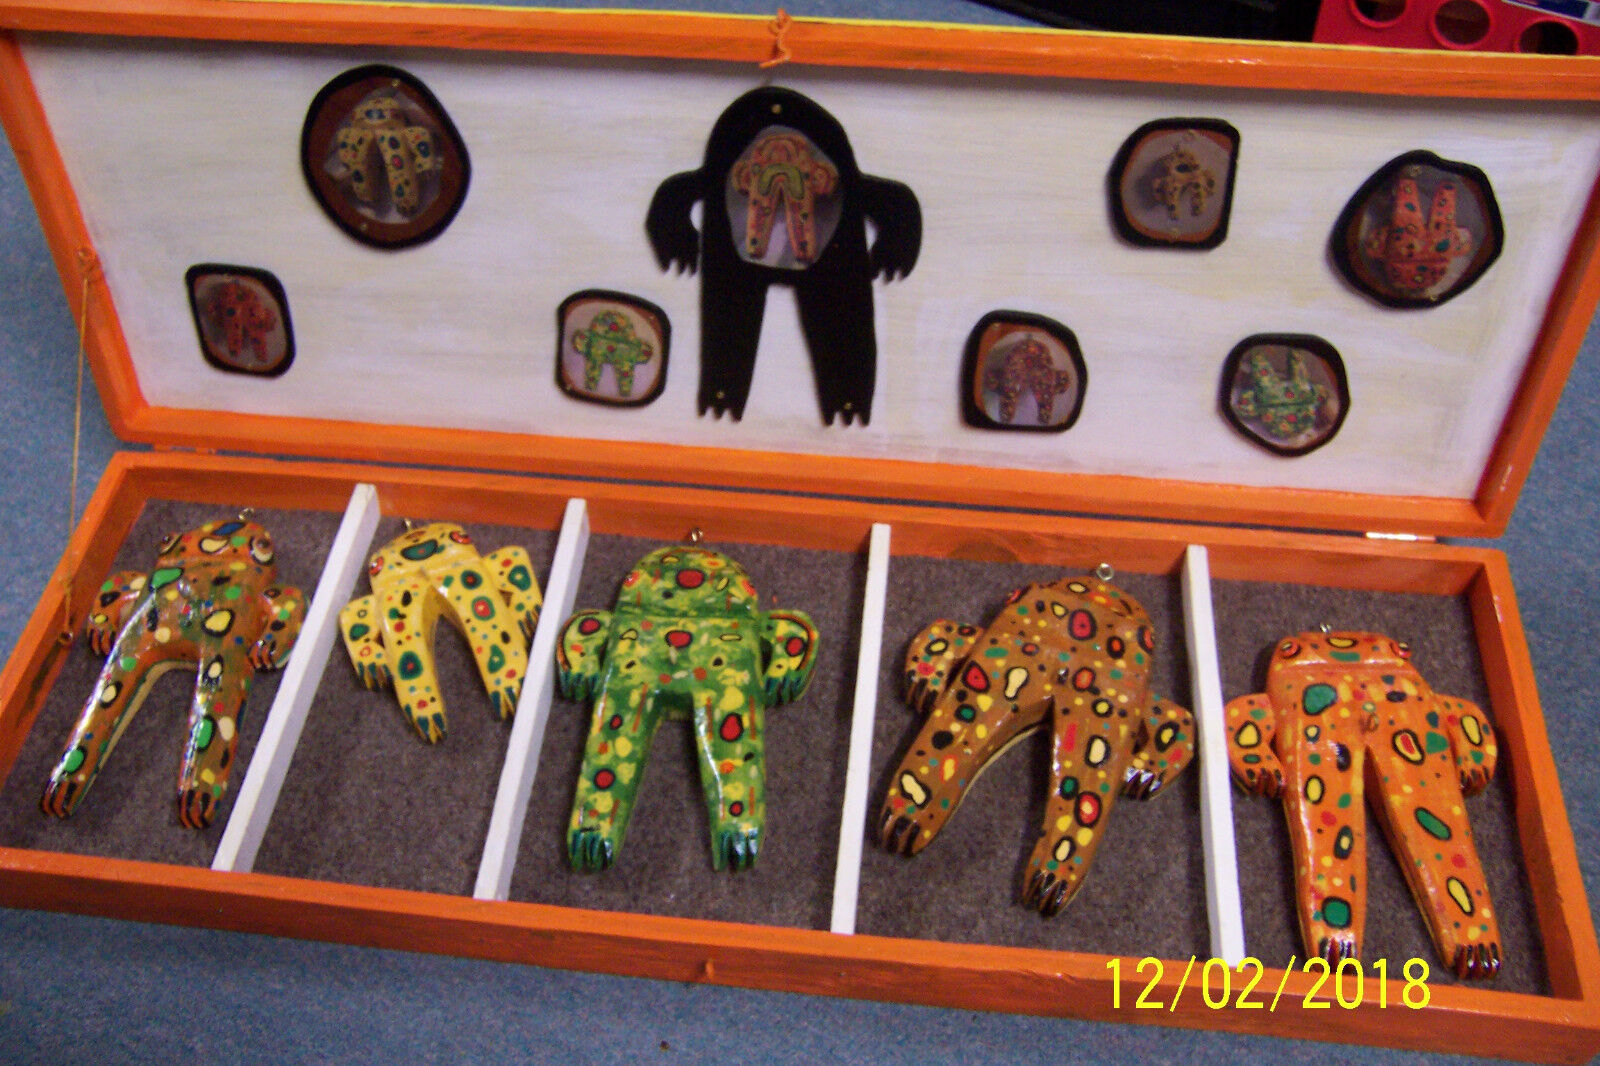 FLORIDA 5 BULL FROG FISHING LURES IN A COLLECTOR'S BOX by Artisan JIM SCHEIBNER